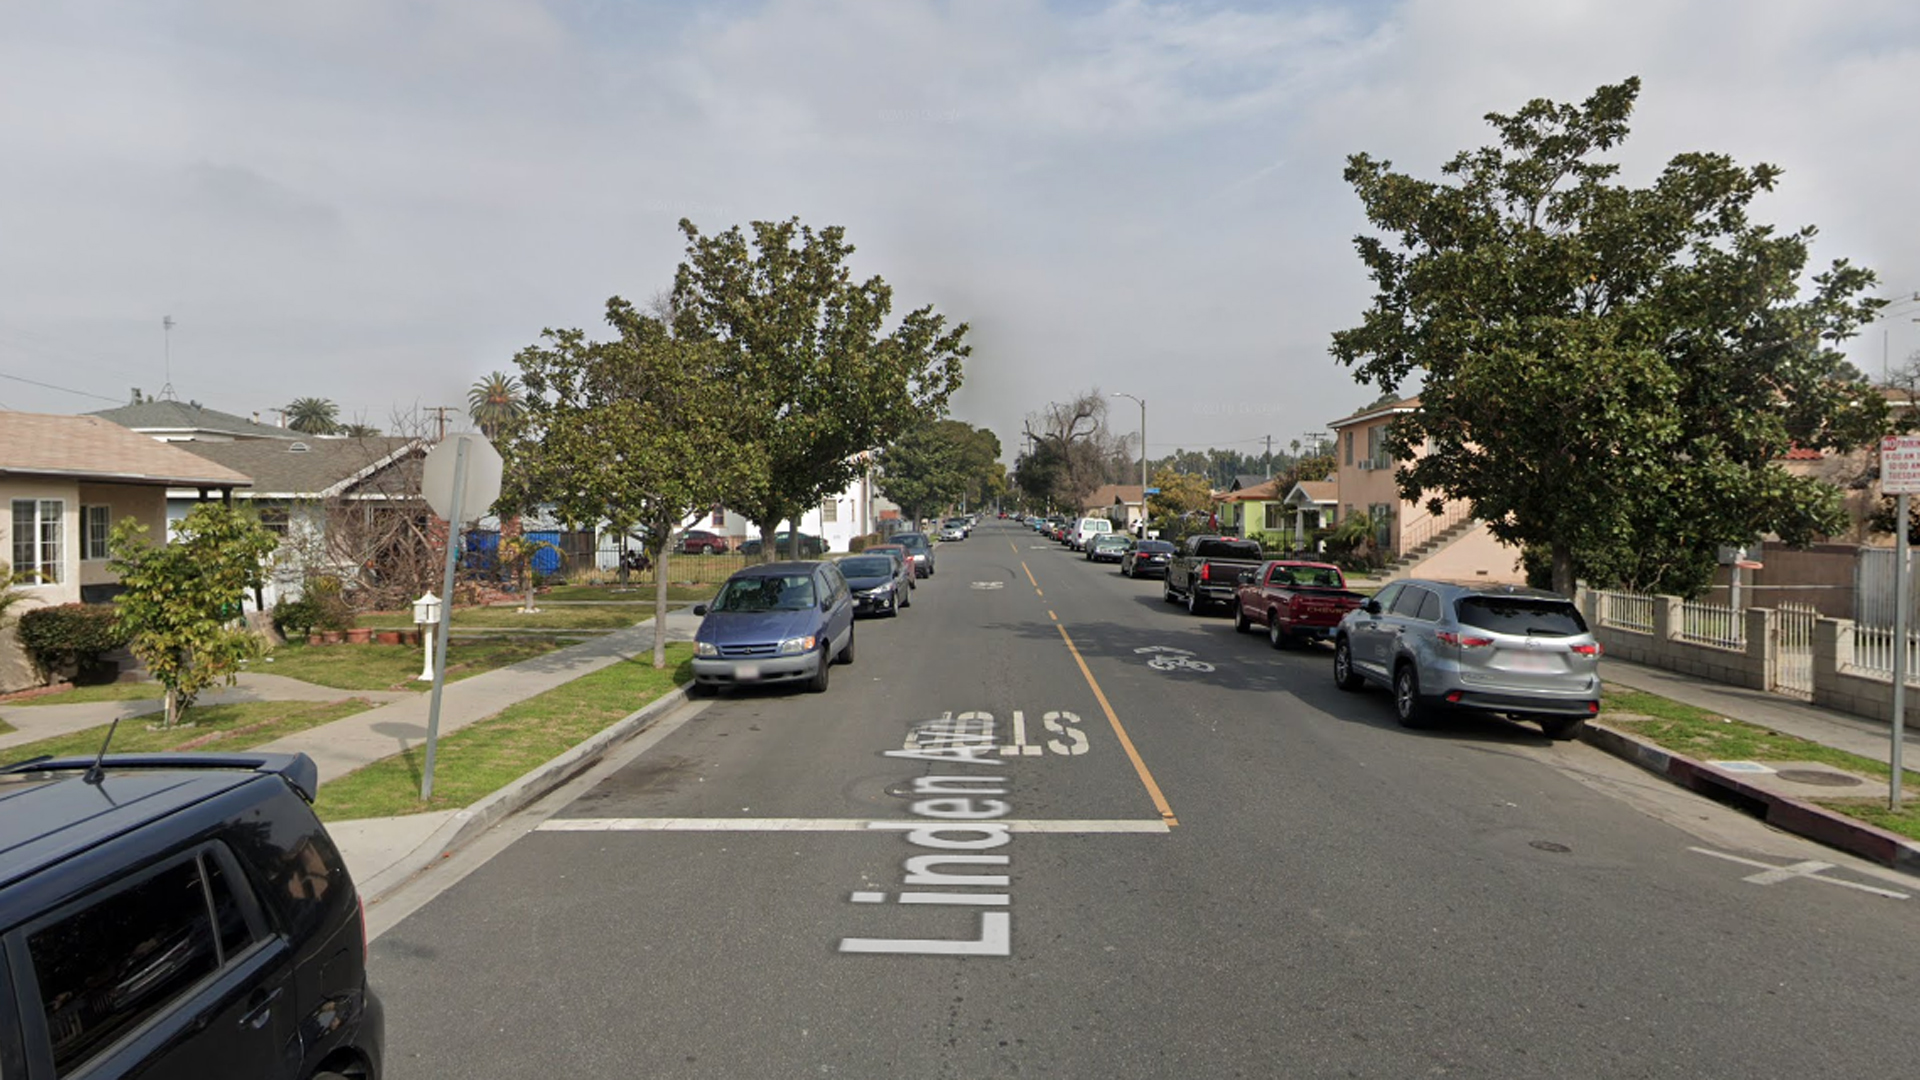 The 6000 block of Linden Avenue in Long Beach, as viewed in a Google Street View image.